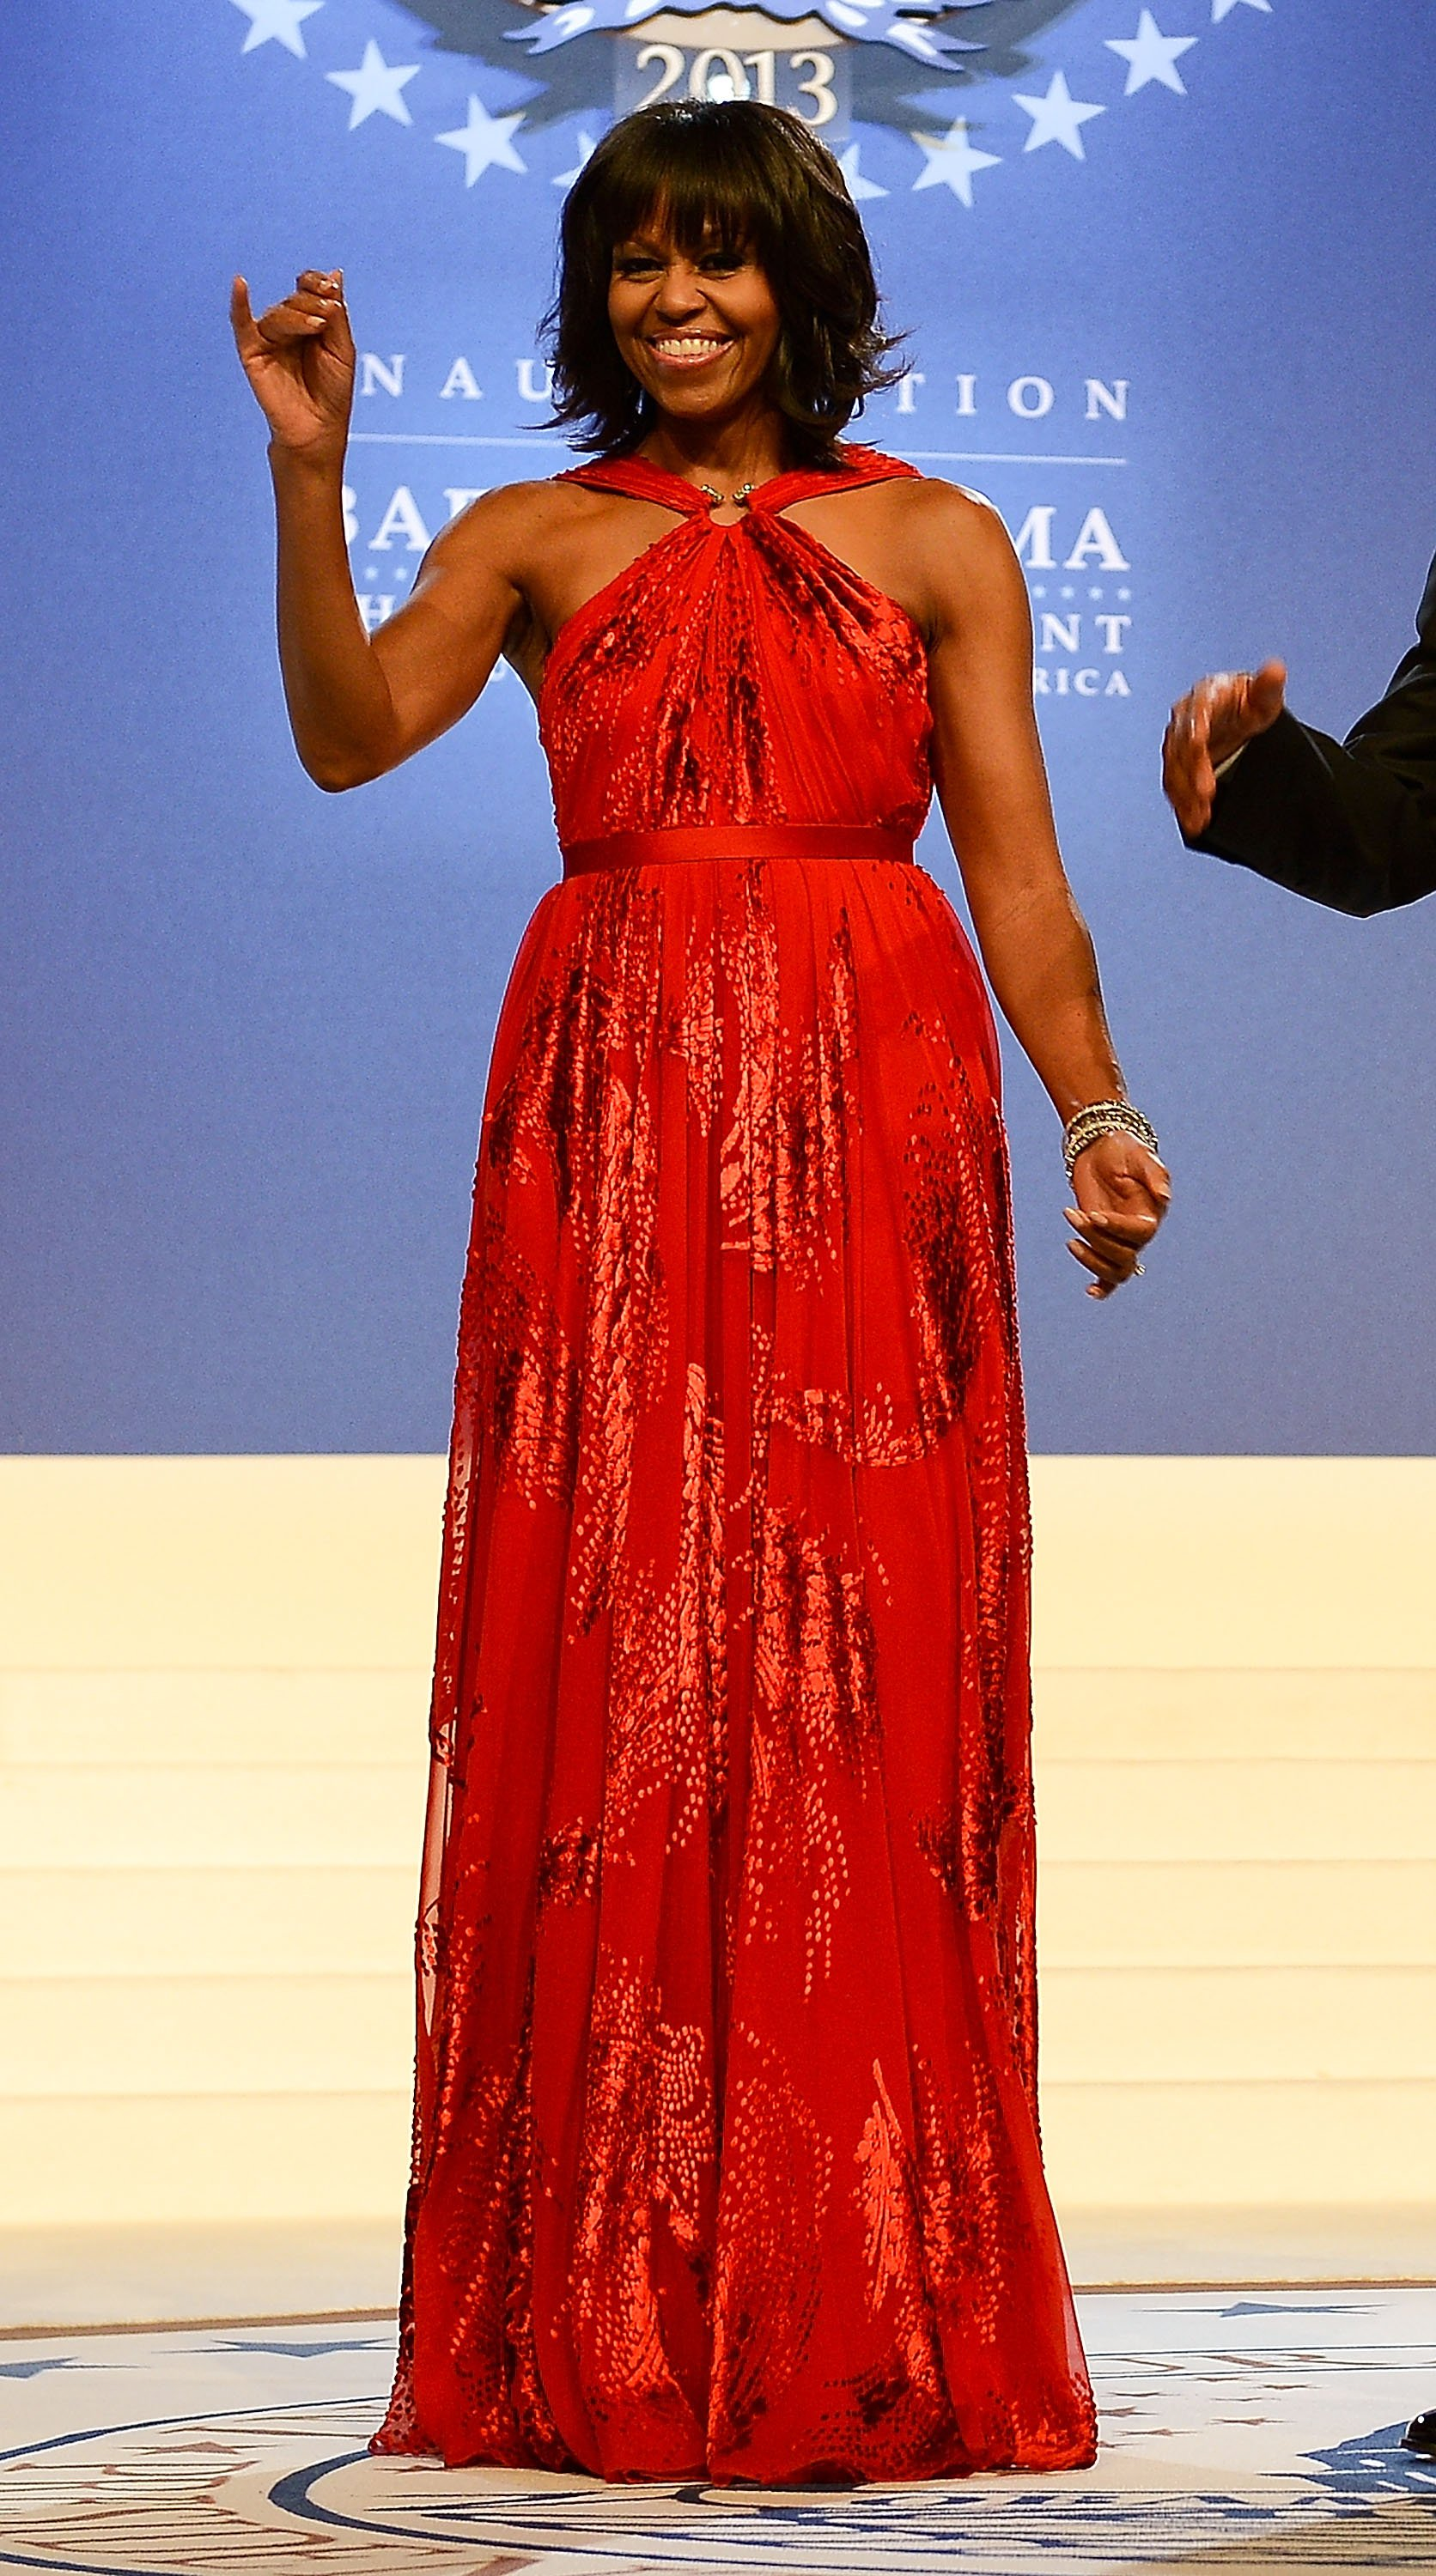 Michelle Obama in Jason Wu at the Inaugural Ball